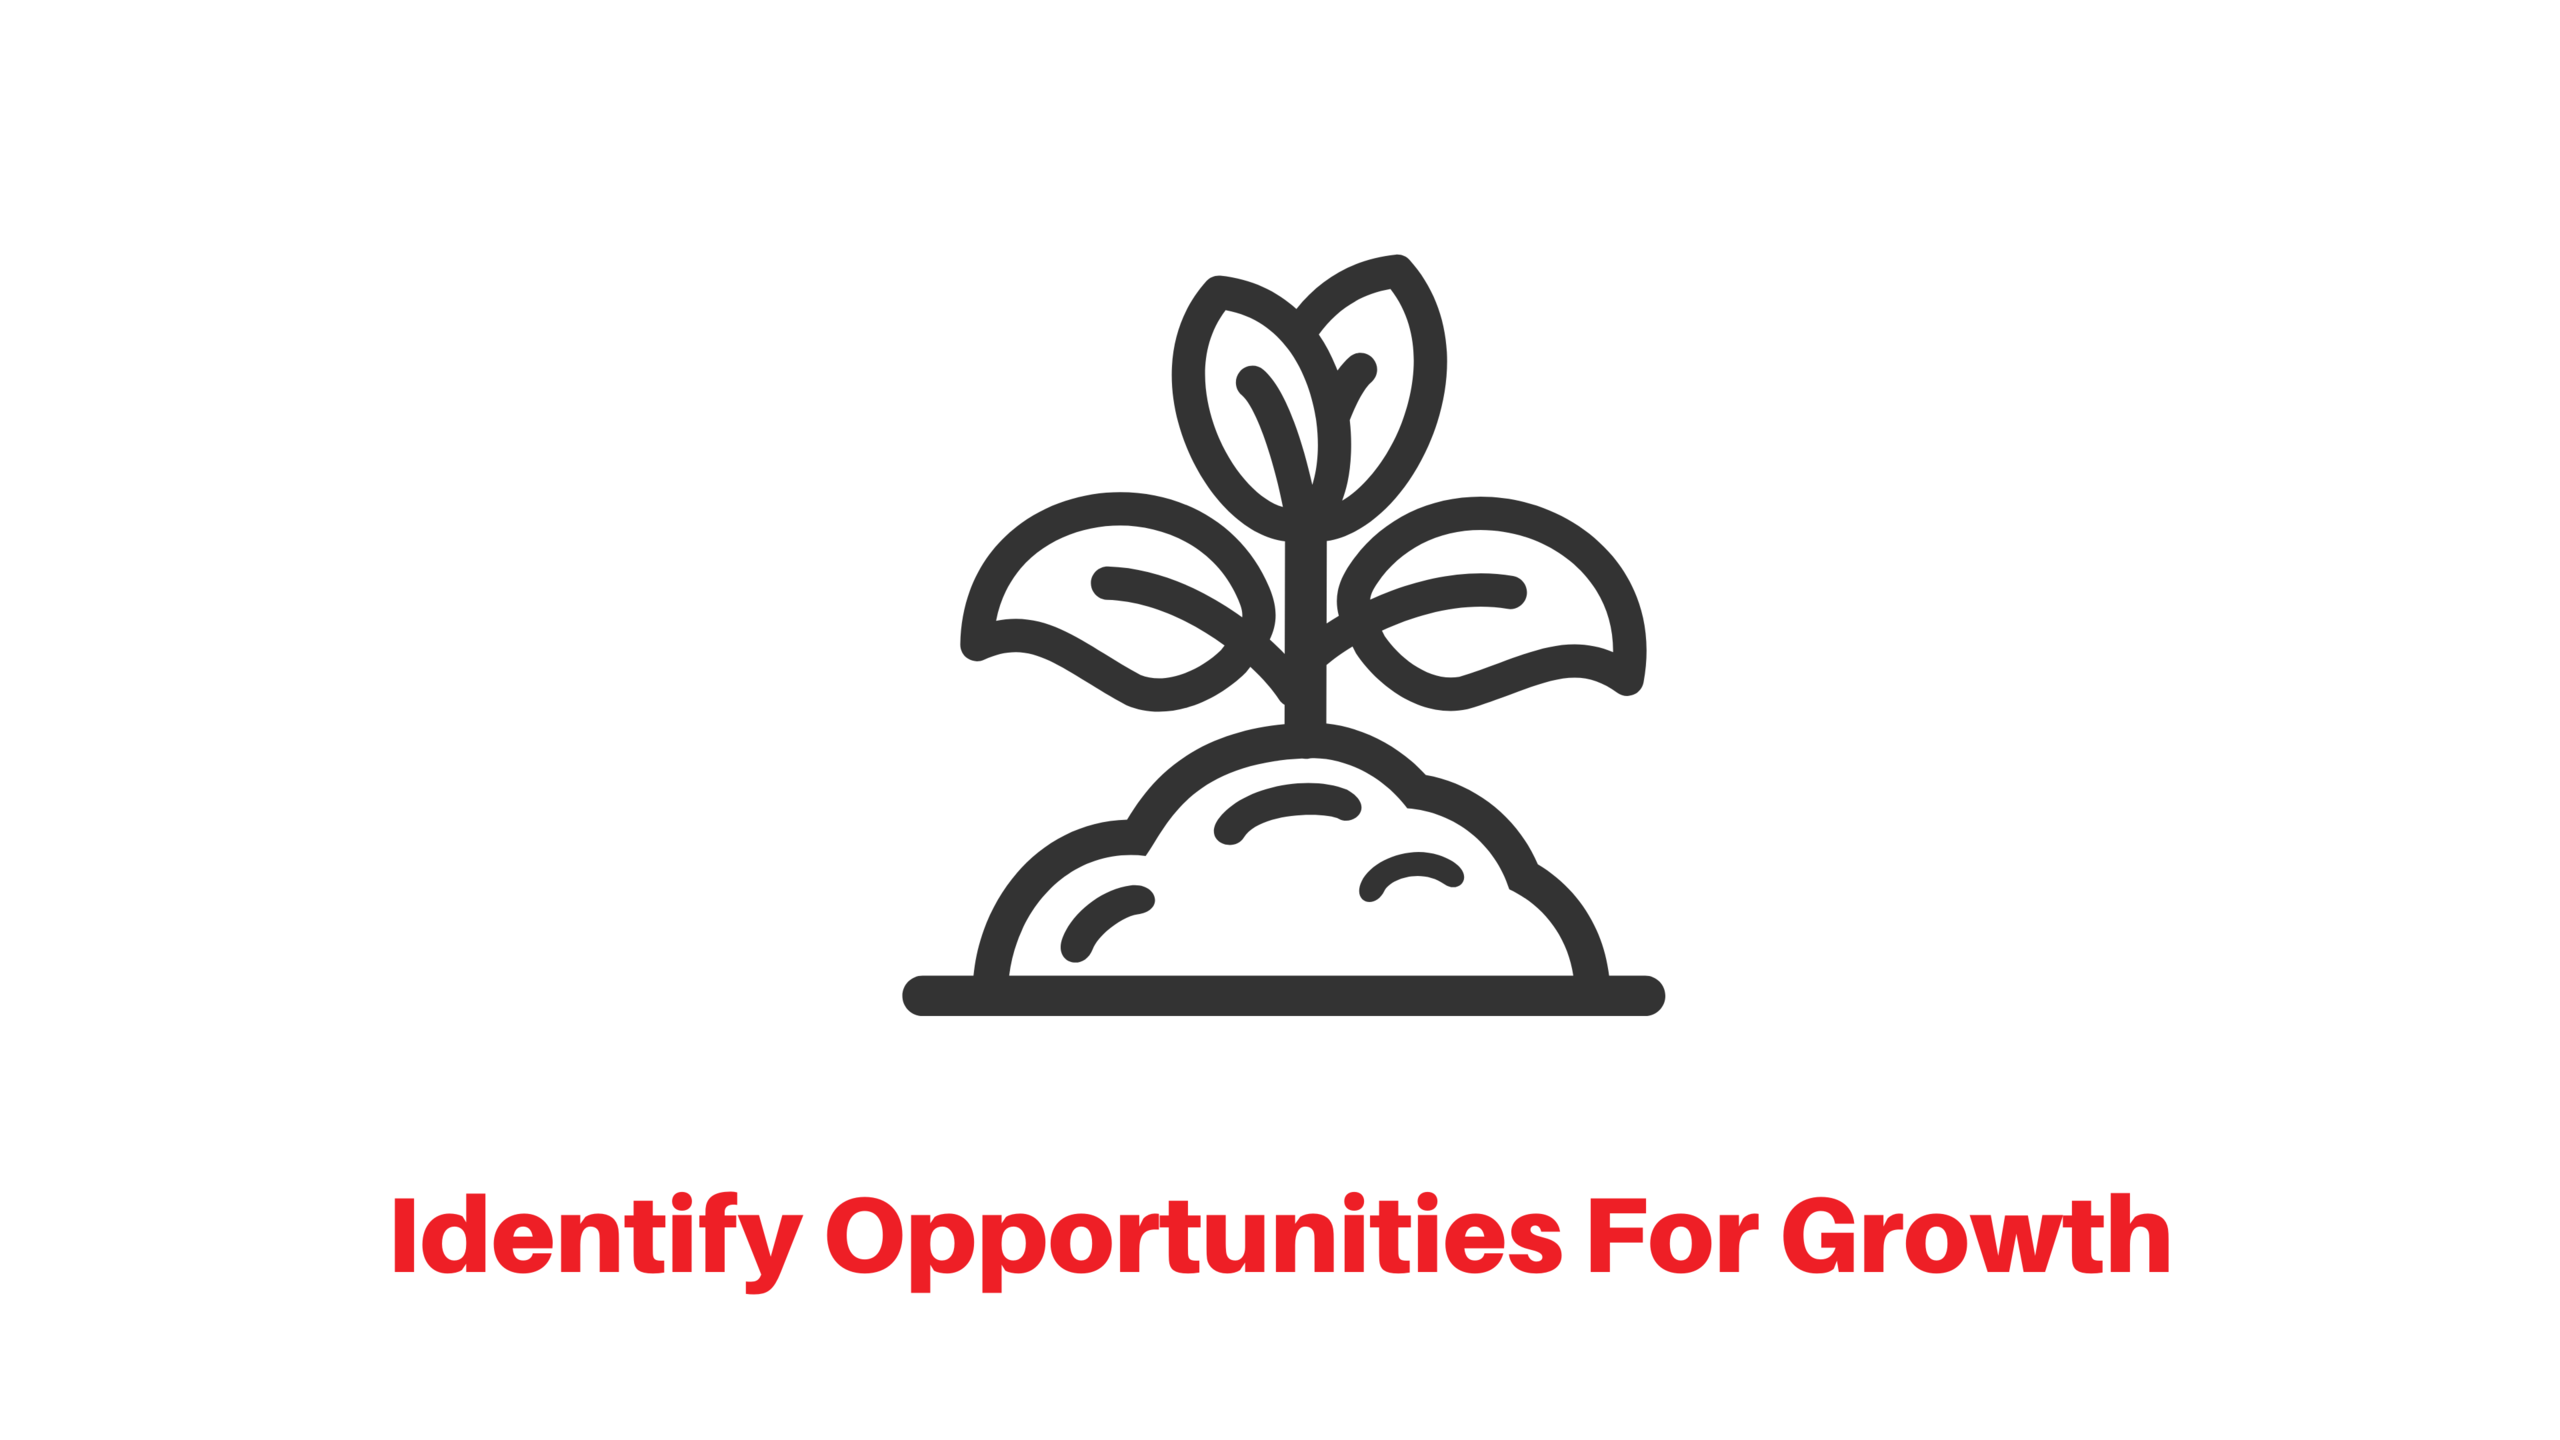 Identify opportunities for growth icon